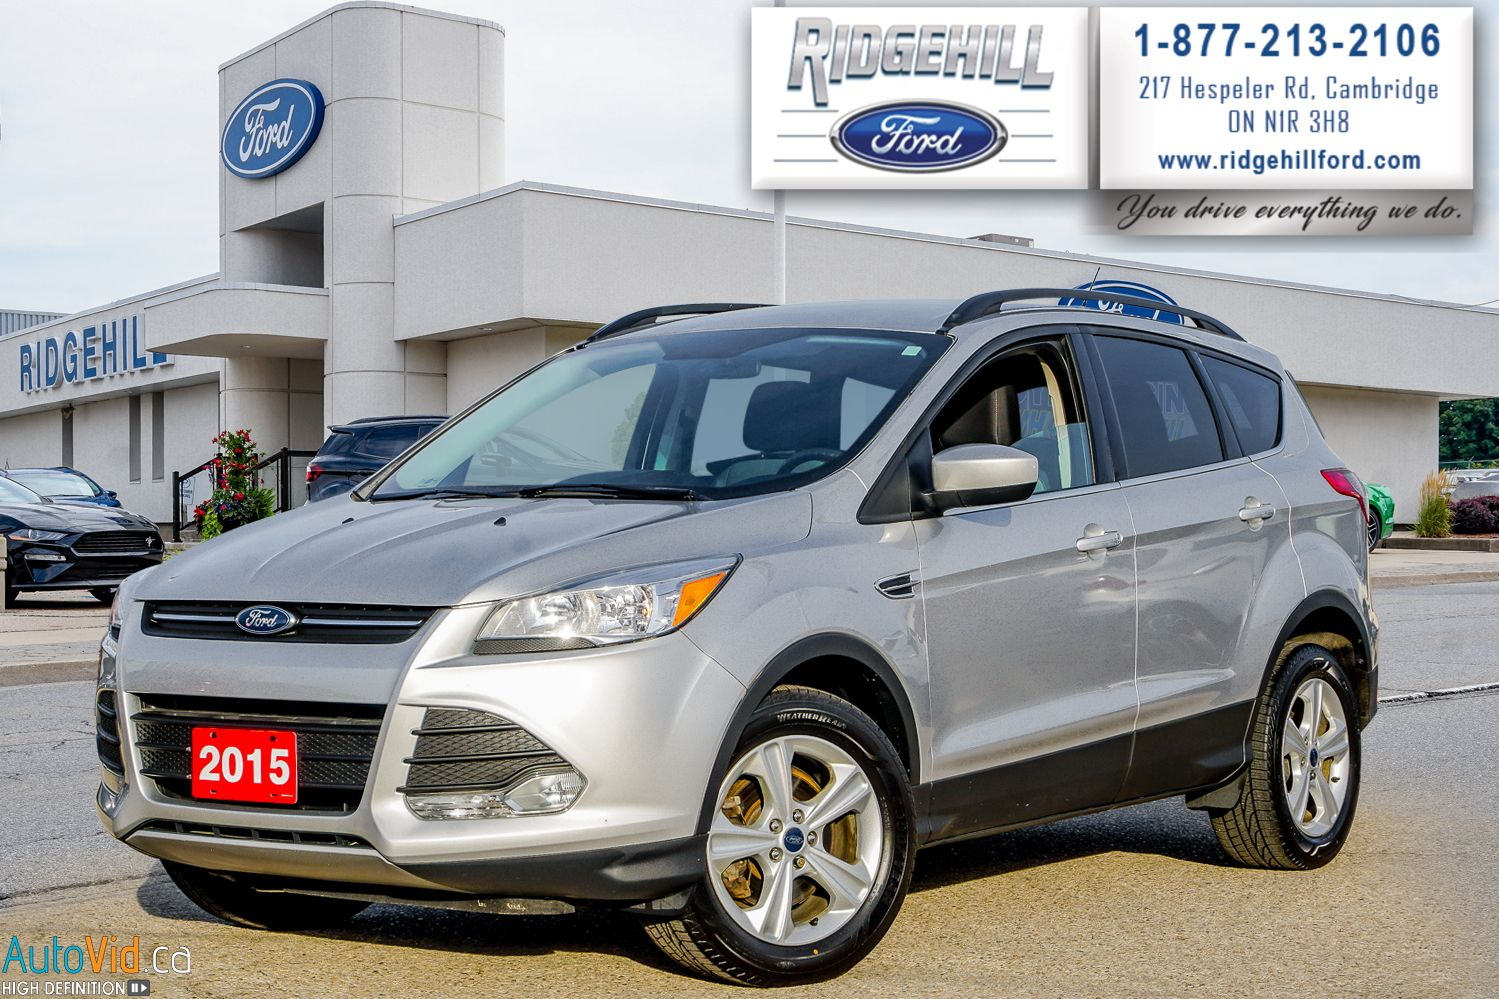 2015 Ford Escape Image